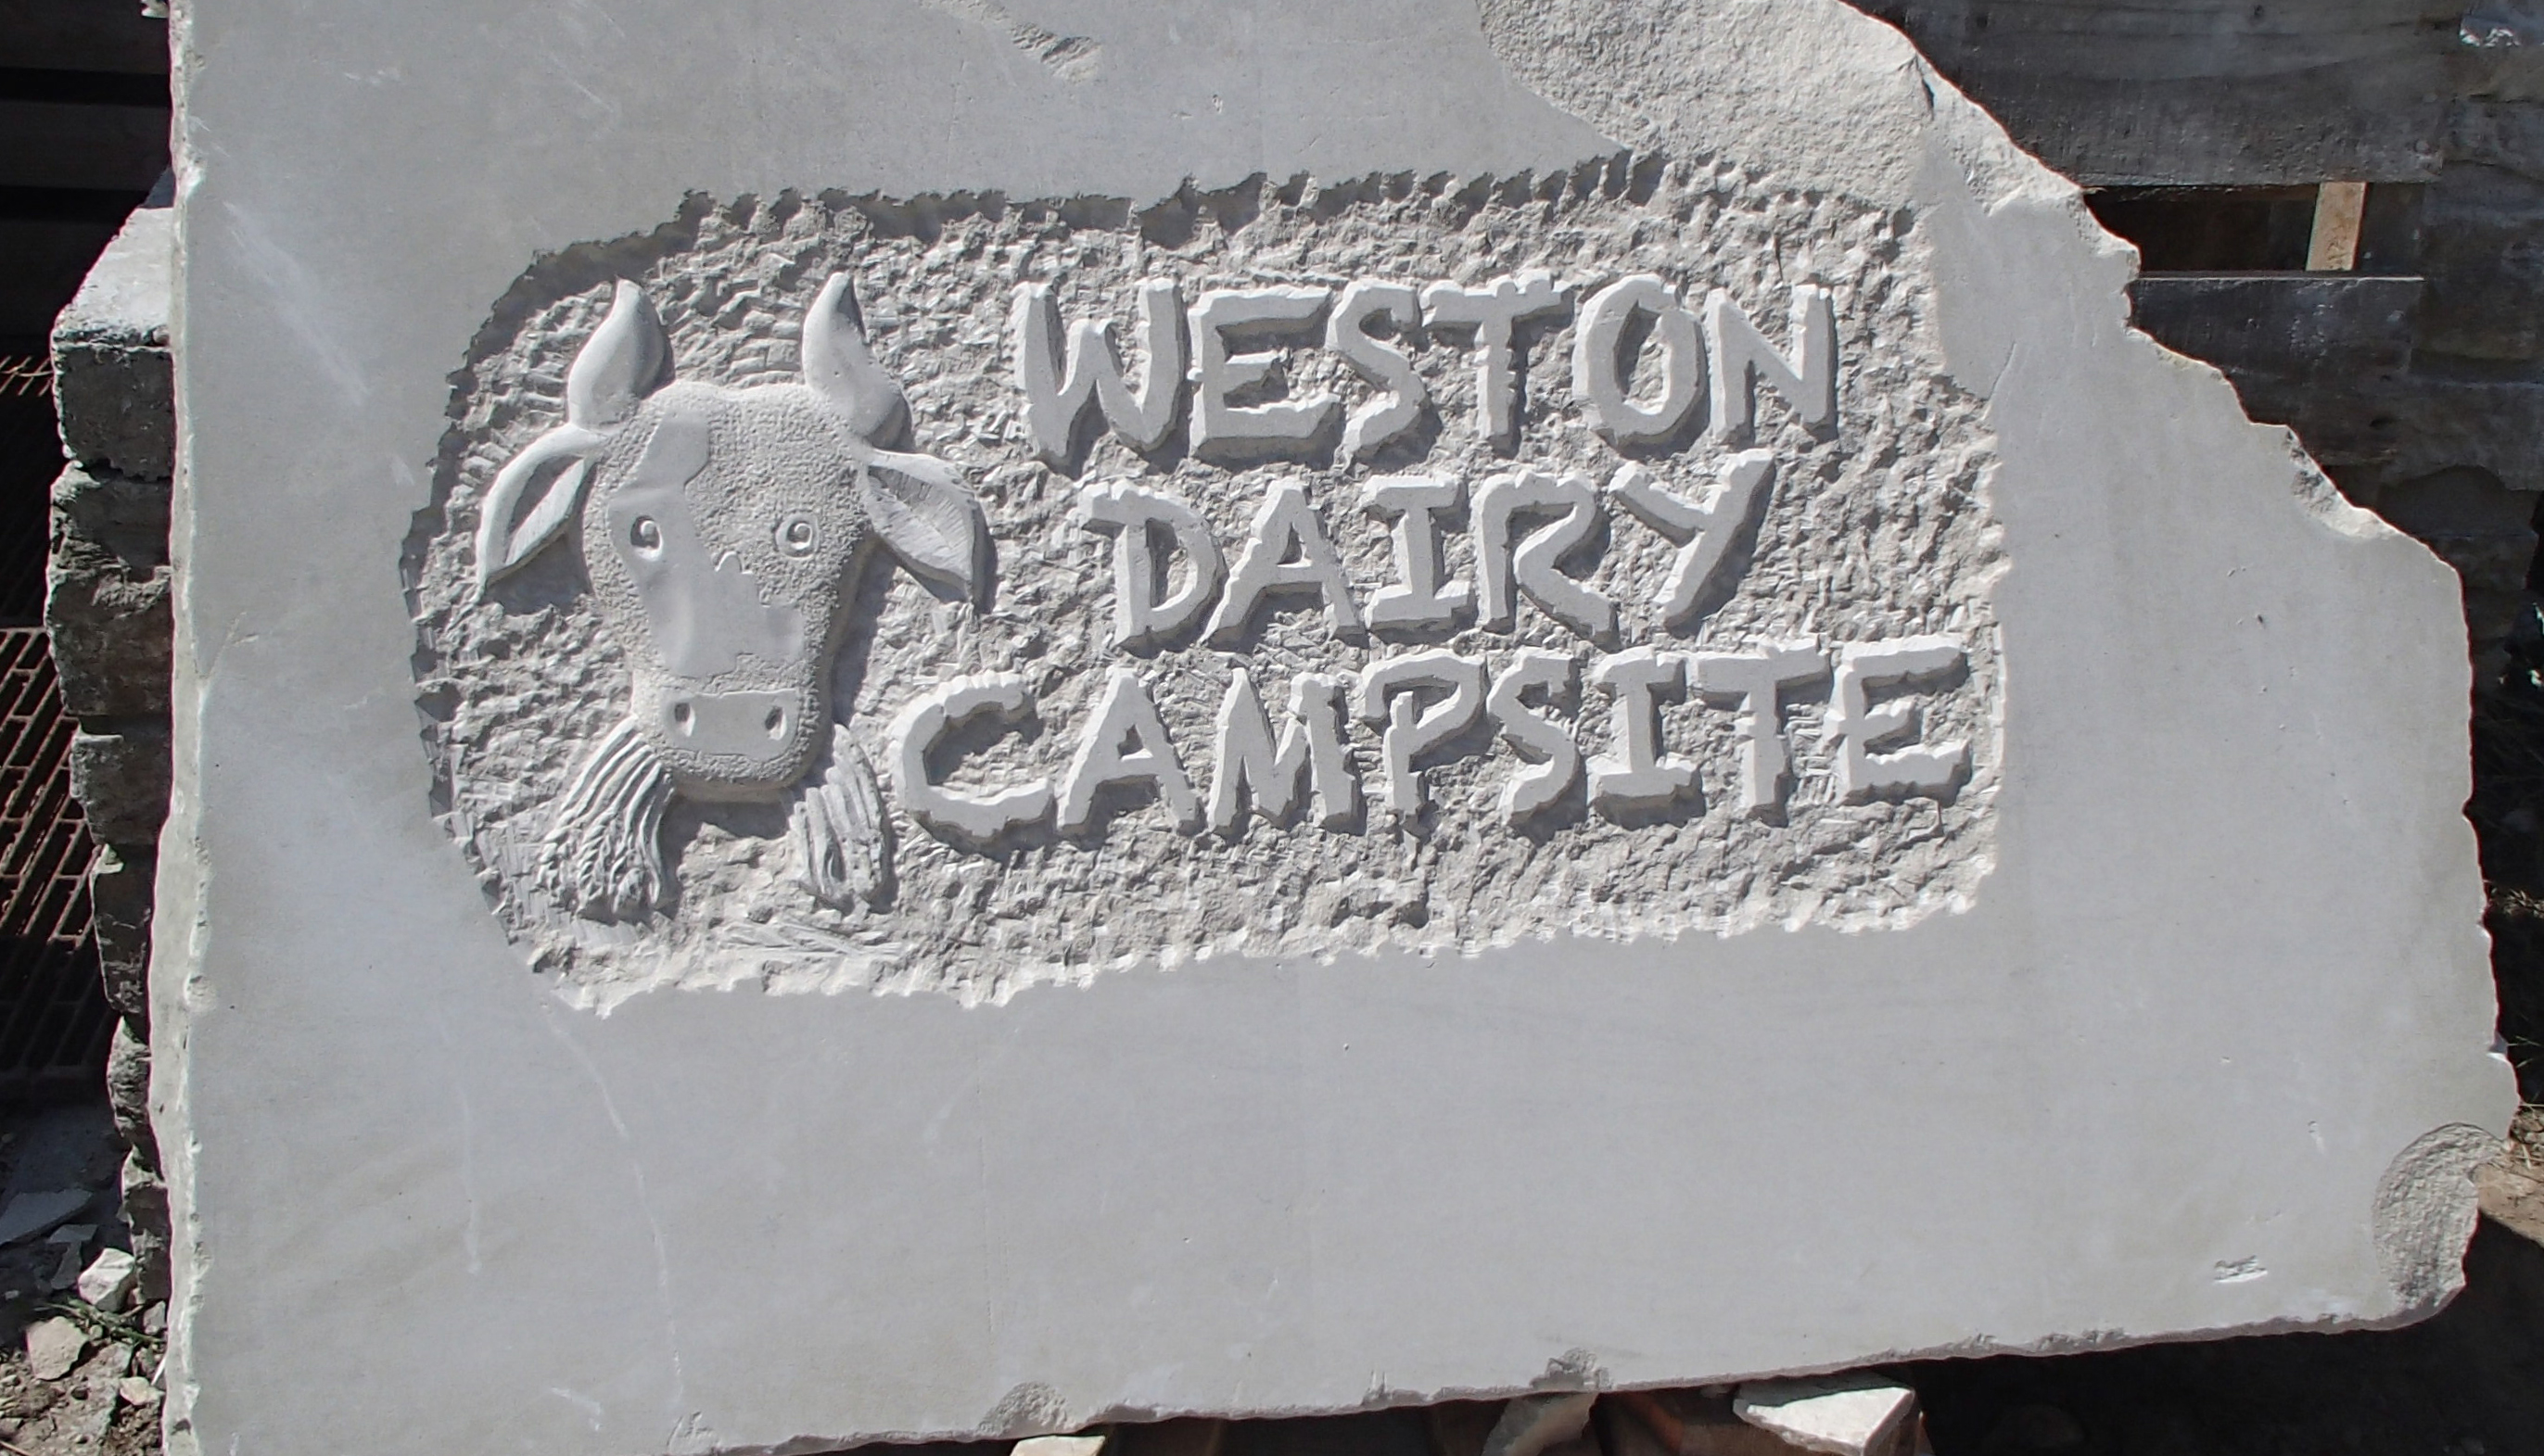 'Weston Dairy Campsite' - carved sign